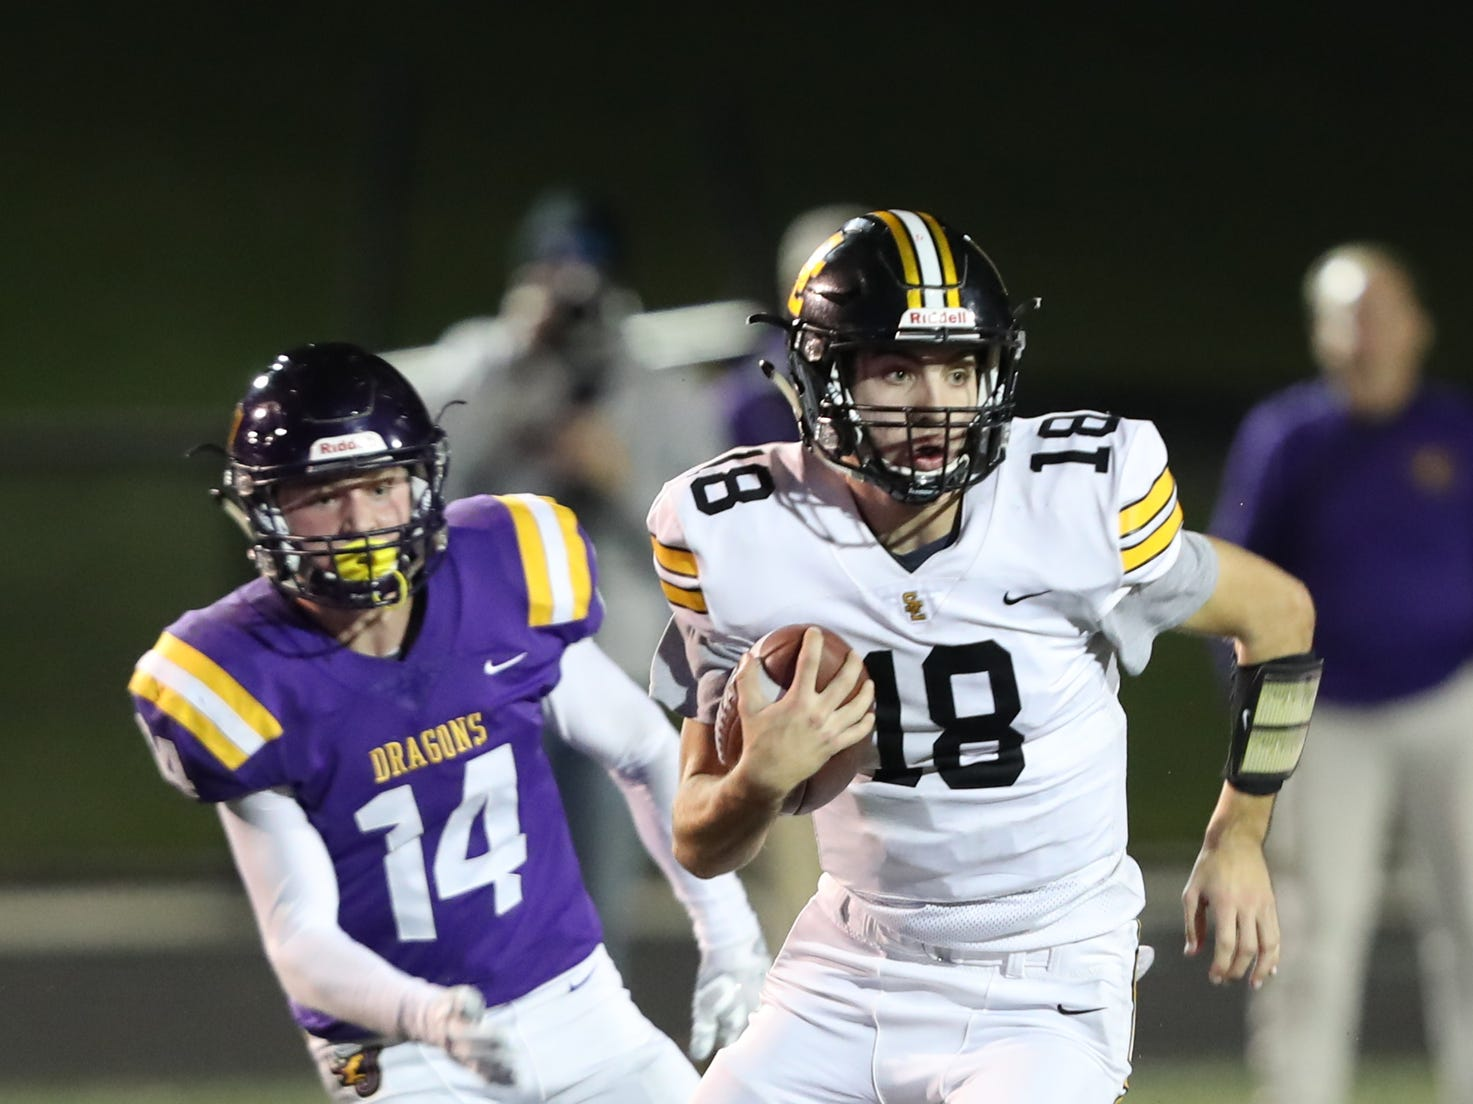 Nov 2, 2018; Johnston, IA, USA; Southeast Polk Rams Josiah Cole (18) runs for a first down against the Johnston Dragons at Johnston Stadium. The Rams beat the Dragons 21-7.